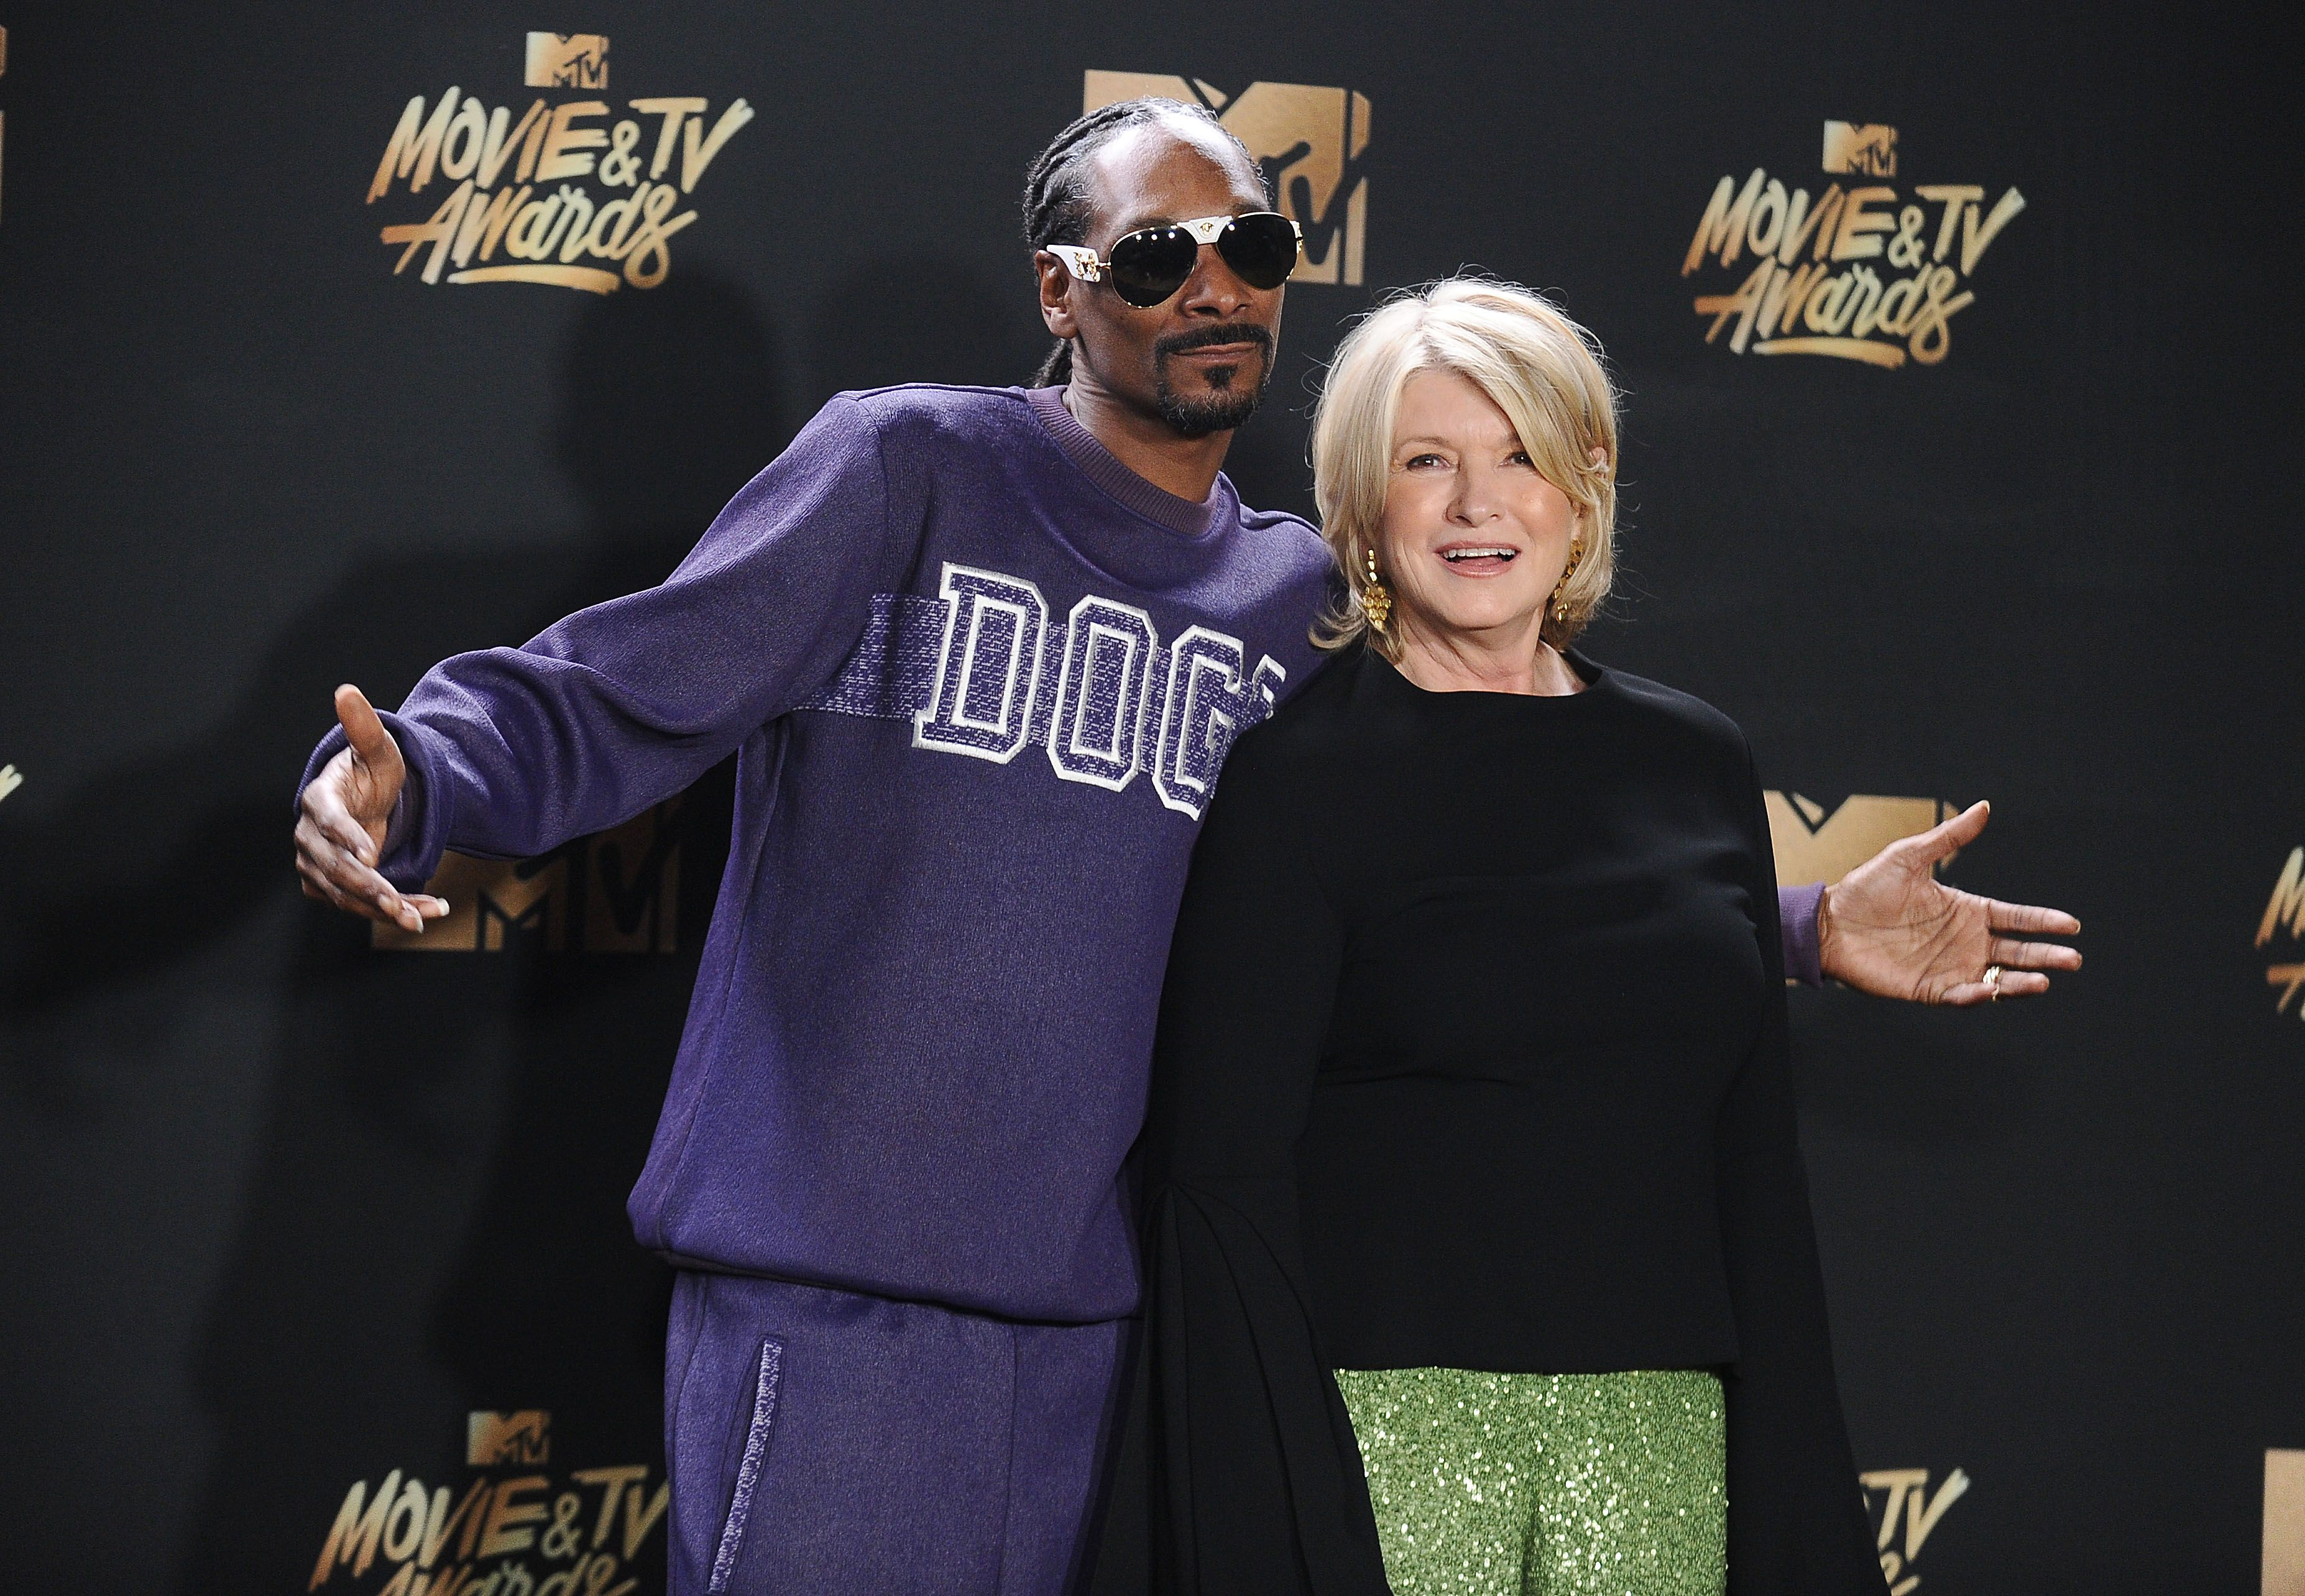 Snoop Dogg and Martha Stewart at the 2017 MTV Movie and TV Awards in Los Angeles | Source: Getty Images